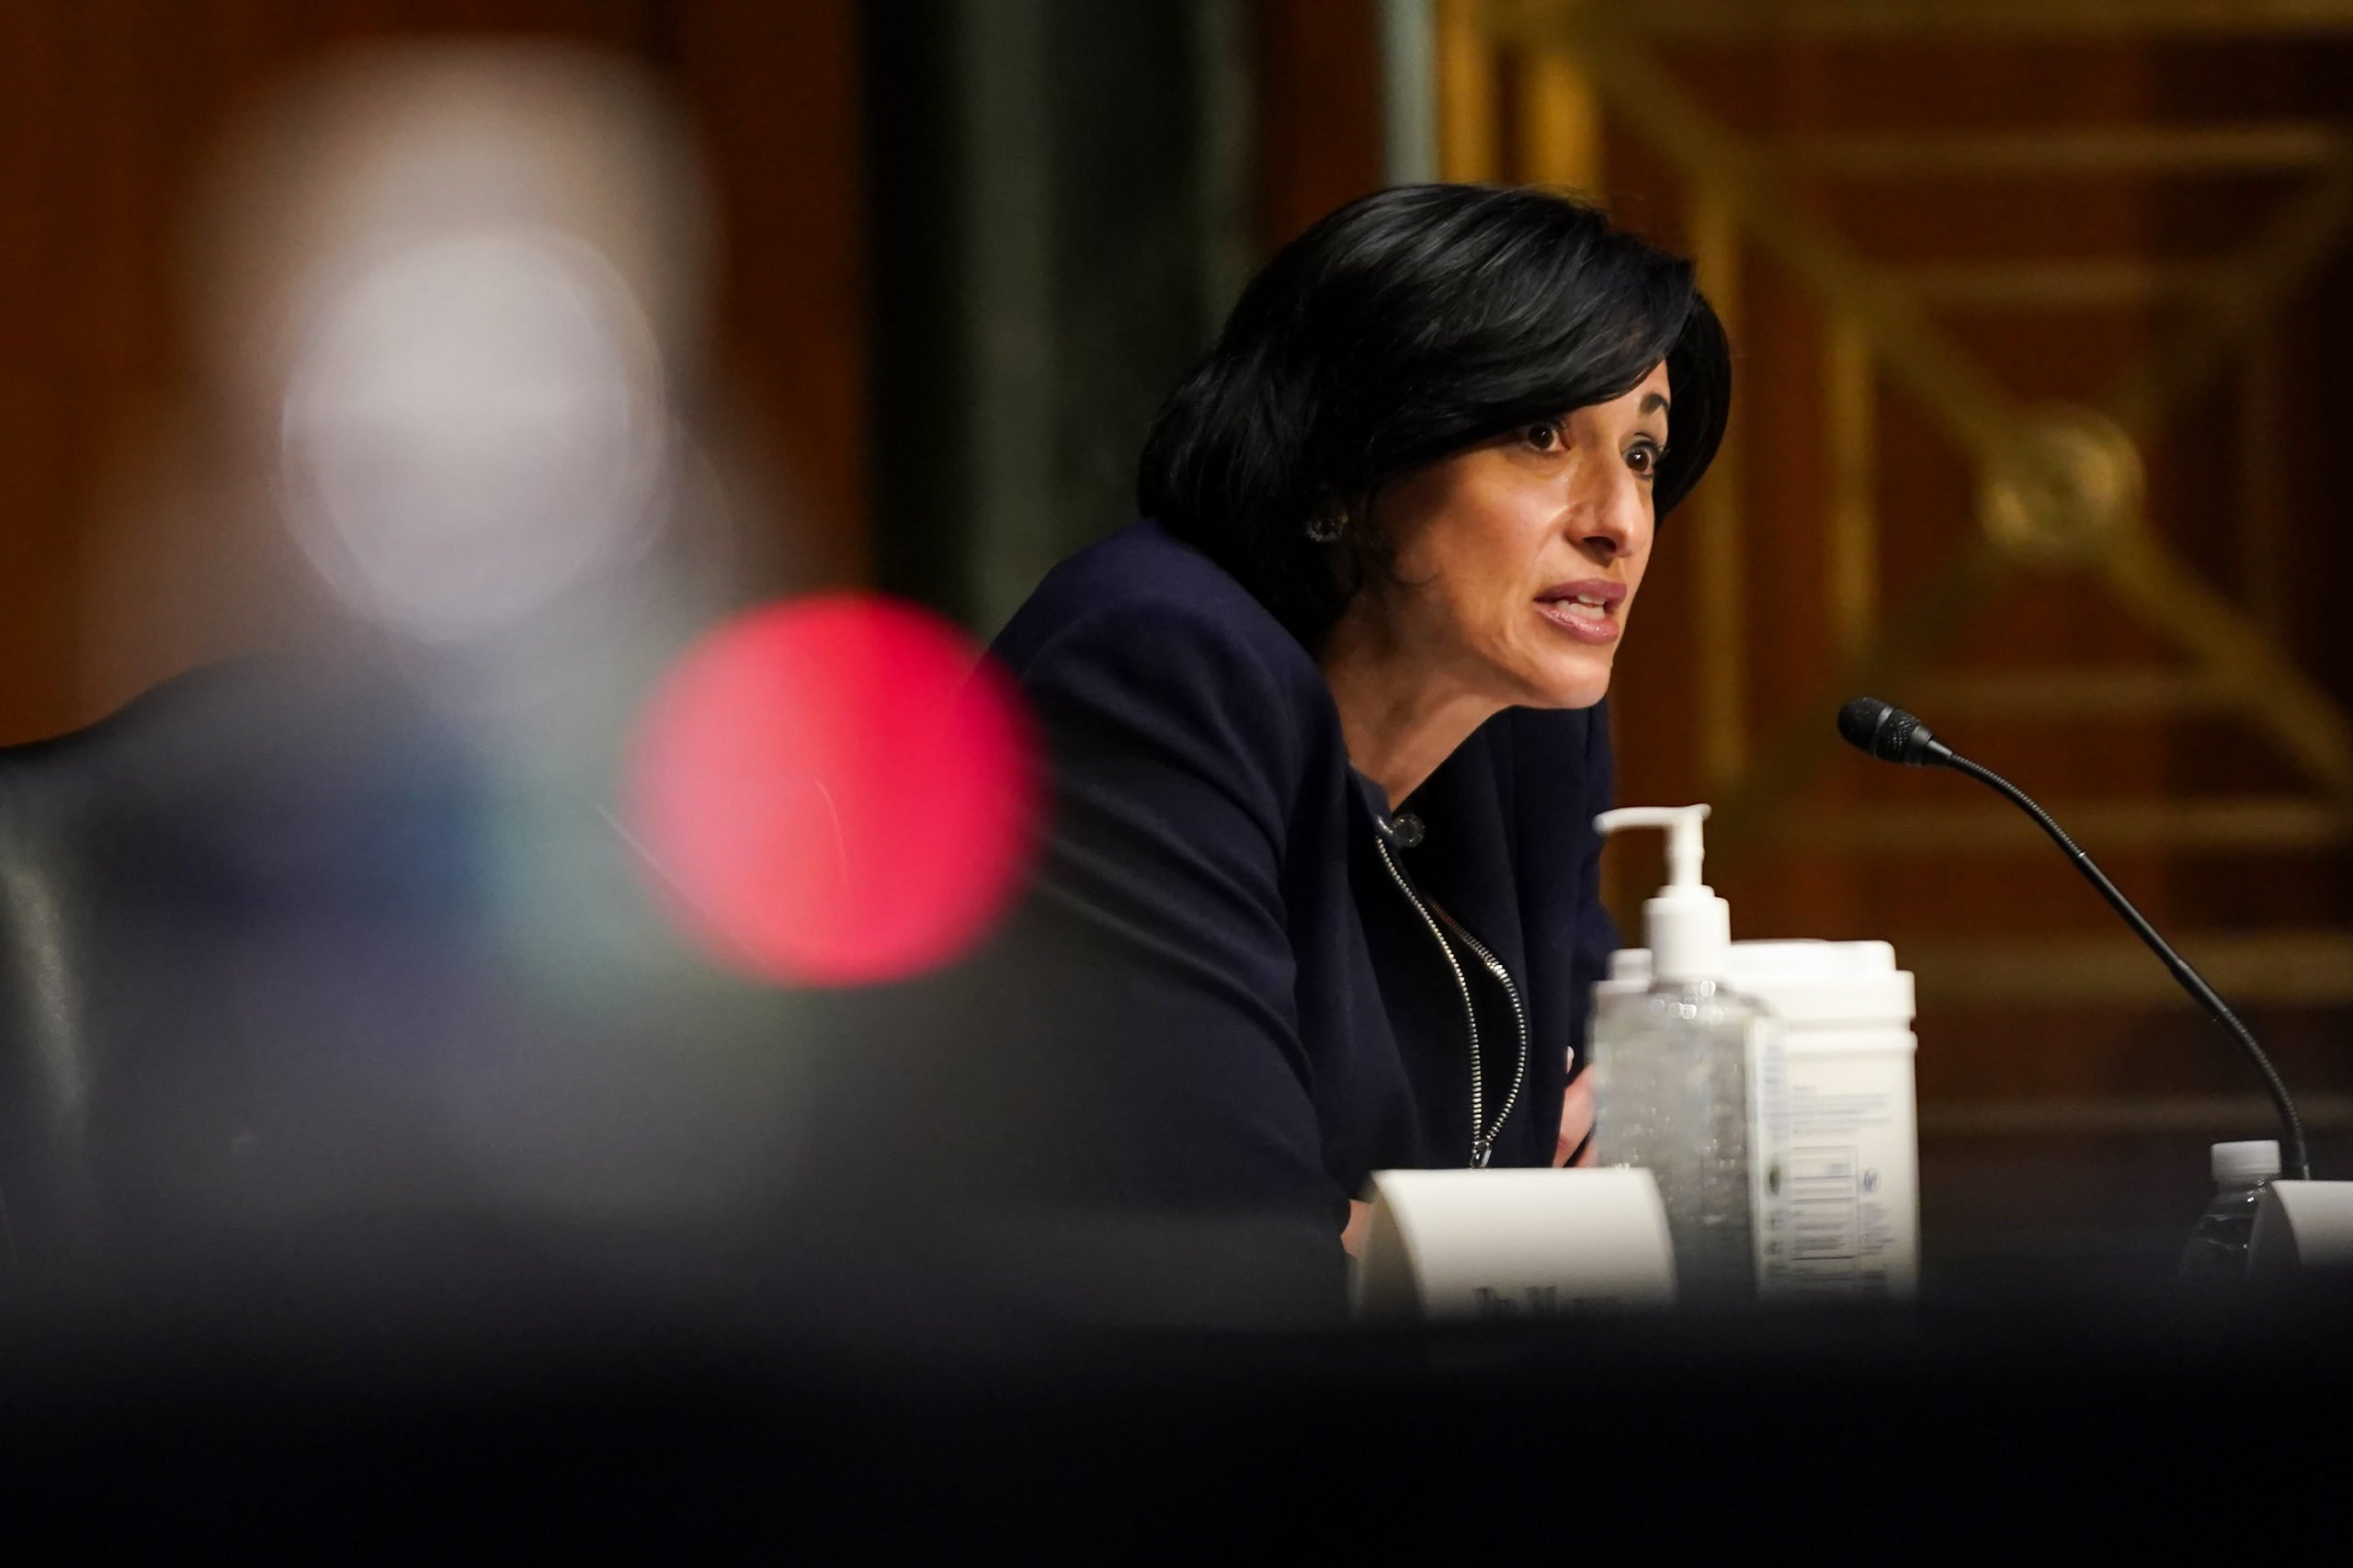 Centers for Disease Control and Prevention Director Rochelle Walensky speaks during a Senate hearing on Tuesday. (Greg Nash/Pool/Getty Images)